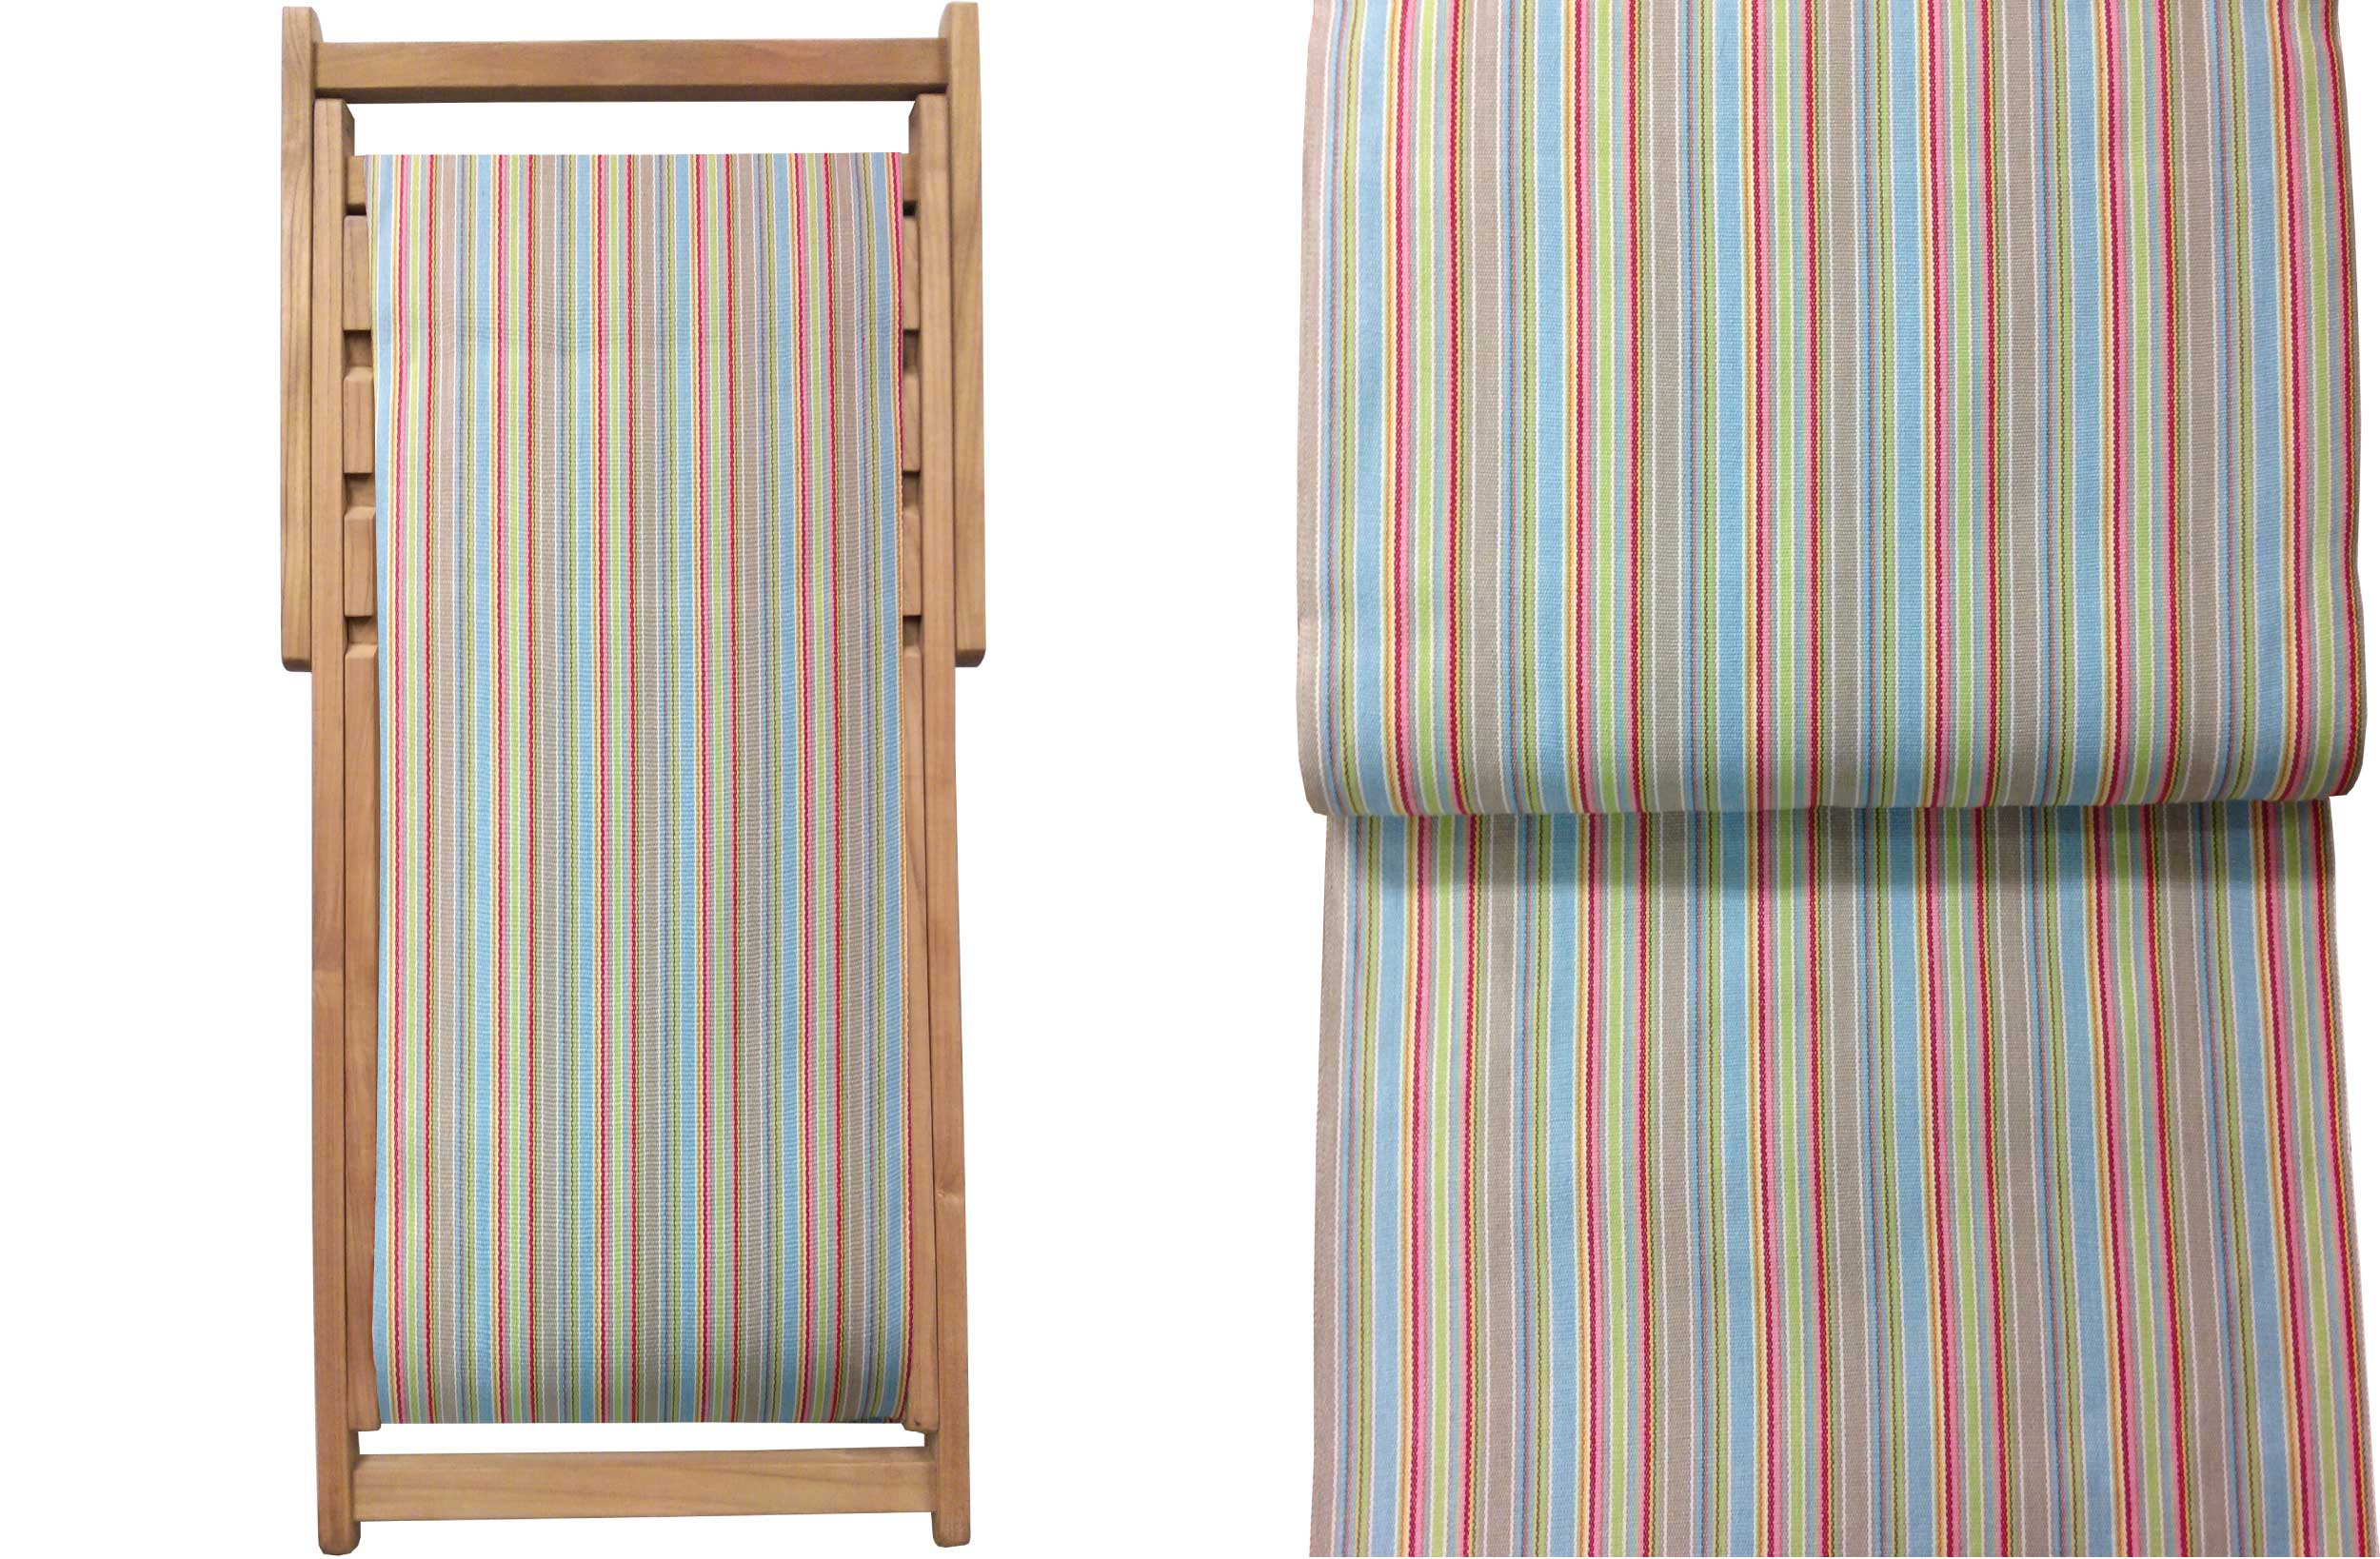 Teak Deck Chairs duck egg blue, beige, light green